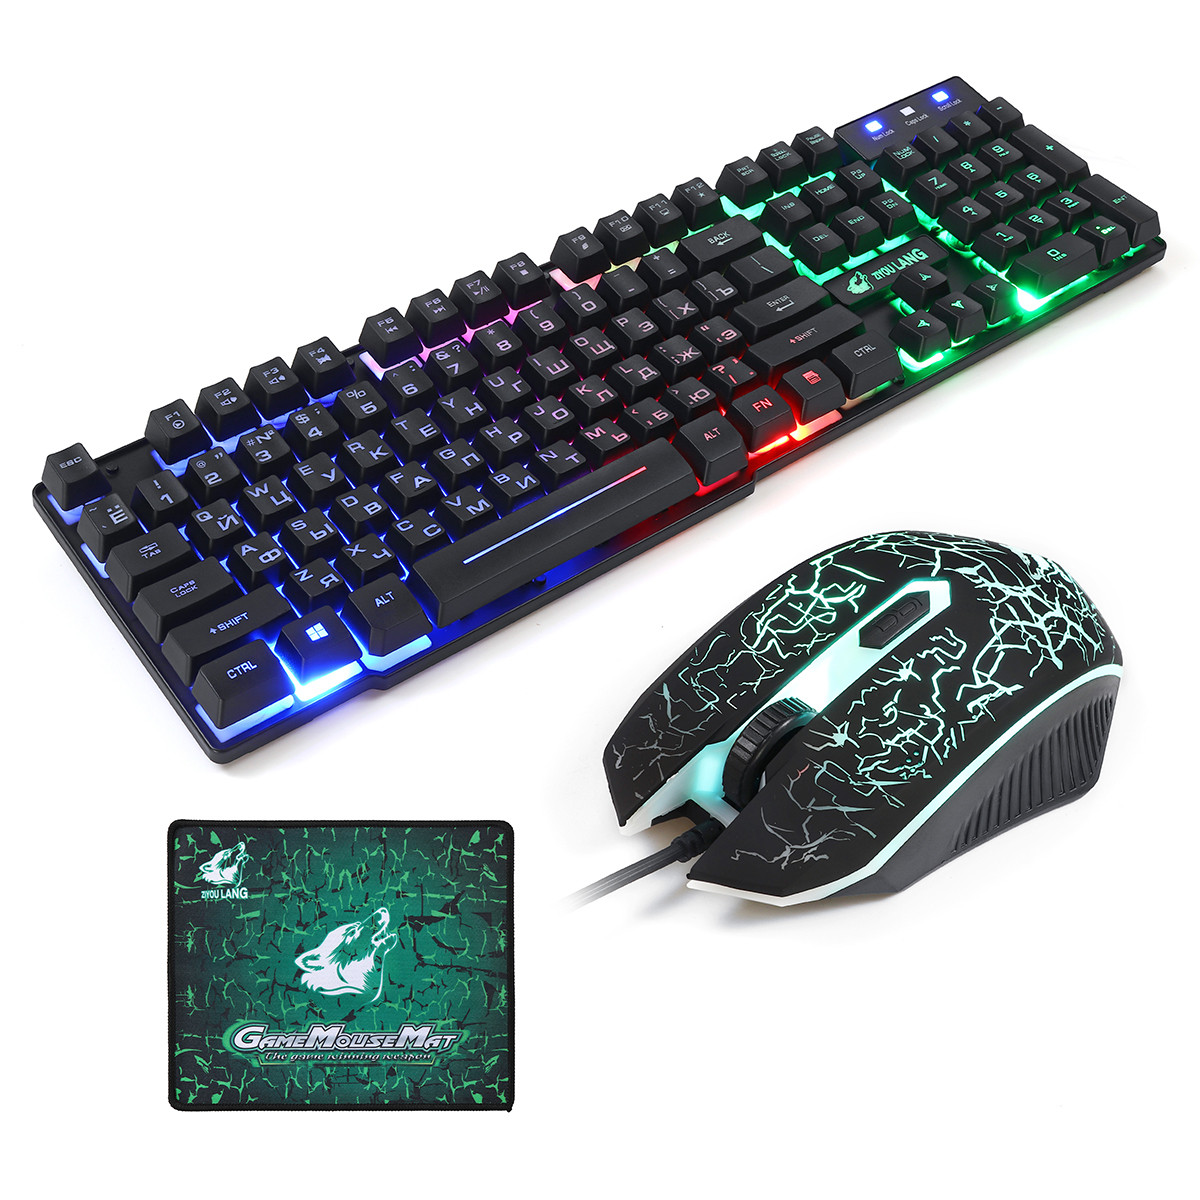 T5 Colorful Bakgrundsbelysning USB Wired Gaming Keyboard och 2000DPI LED Gaming Mouse Combo med musmatta - 1TopShop